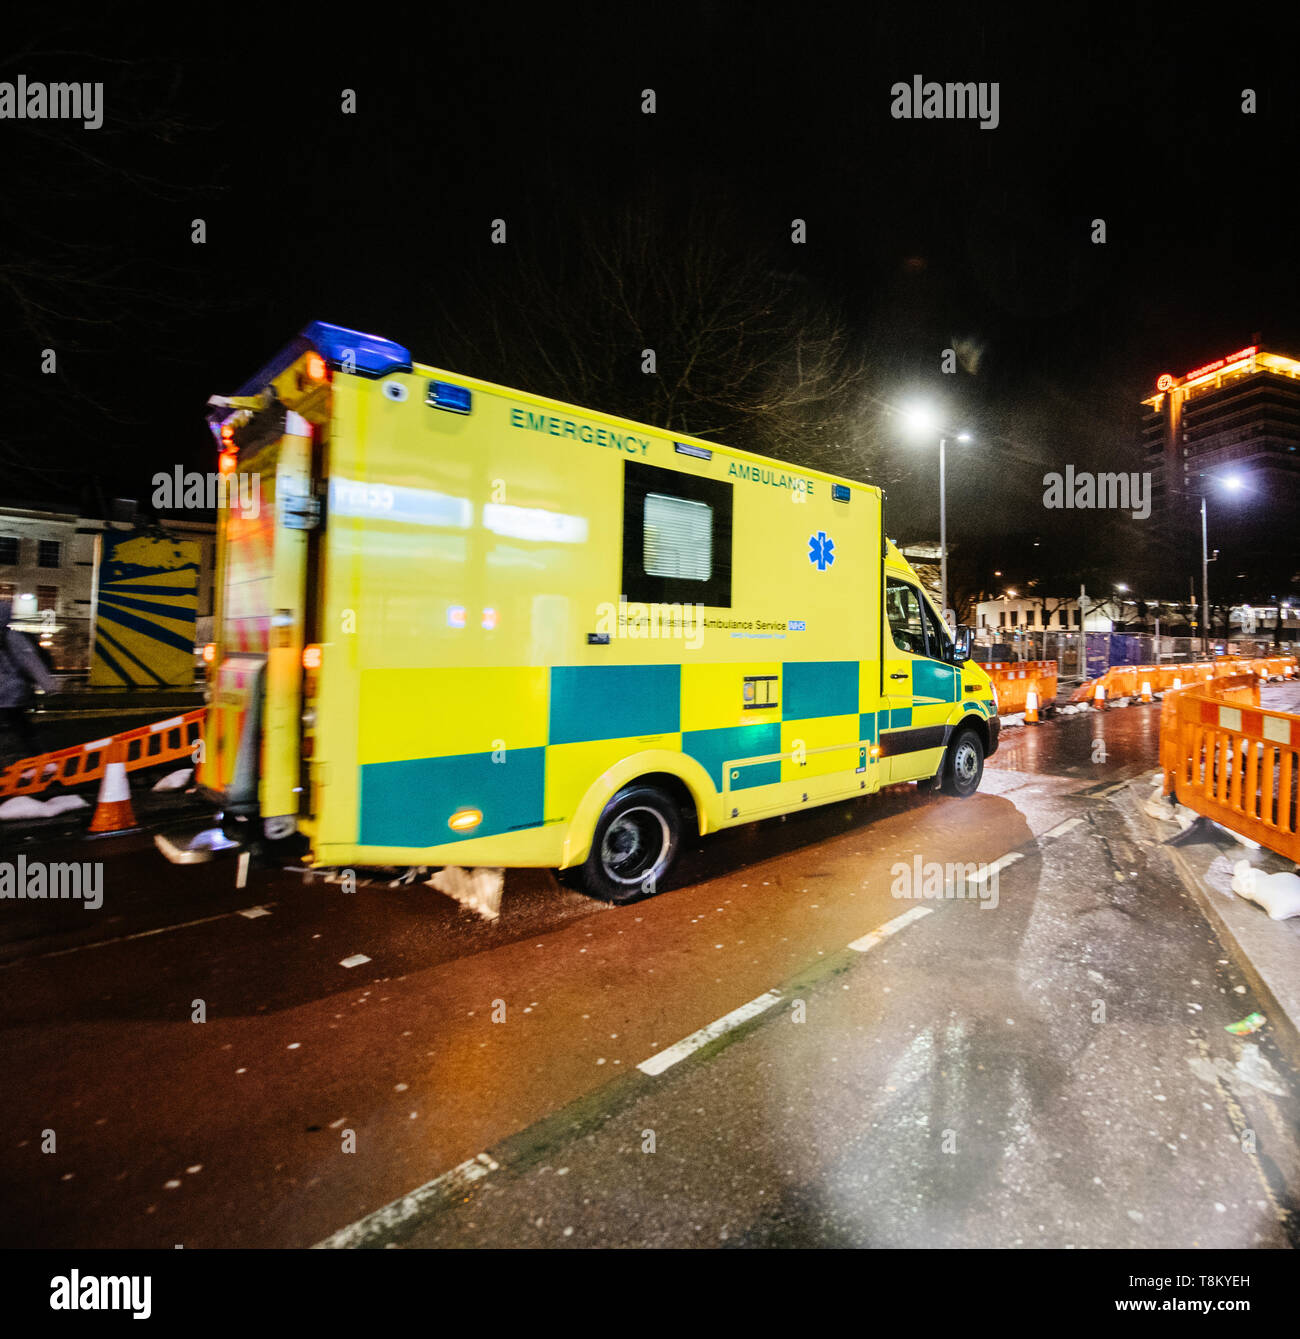 London, United Kingdom - Mar 5, 2017: Yellow NHS ambulance driving fast on the repaired with roadworks street in central london at night square image - Stock Image